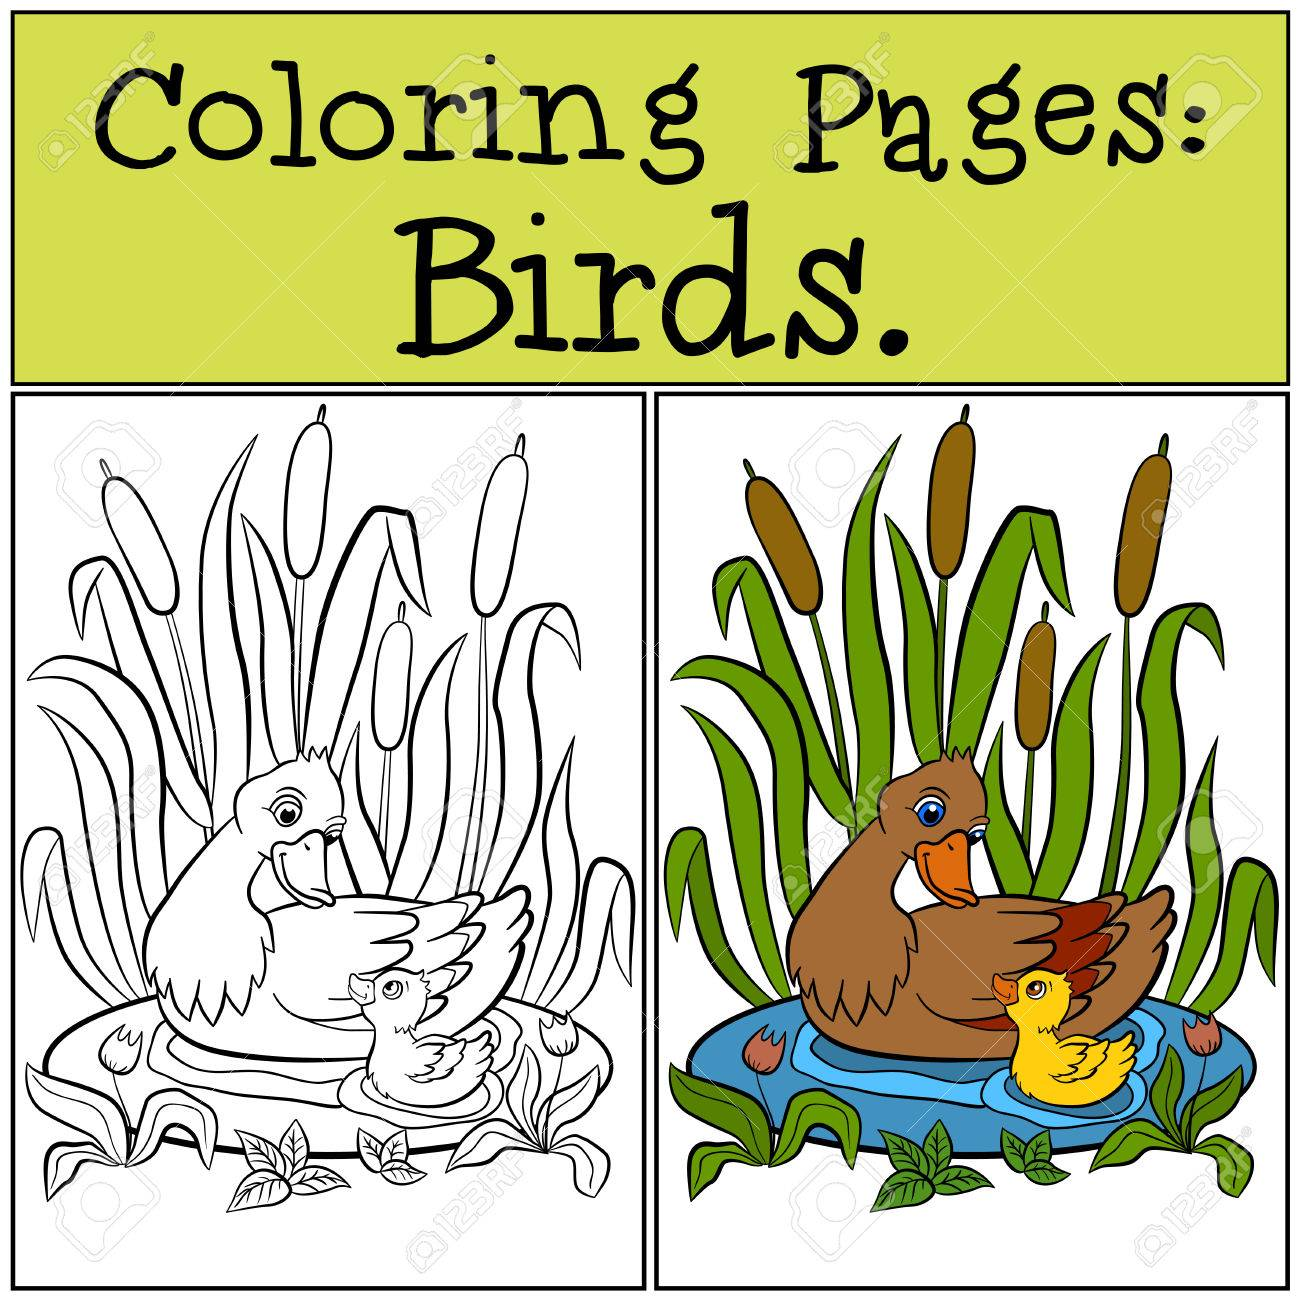 Coloring Pages: Birds. Mother Duck With Her Little Cute Duckling ...